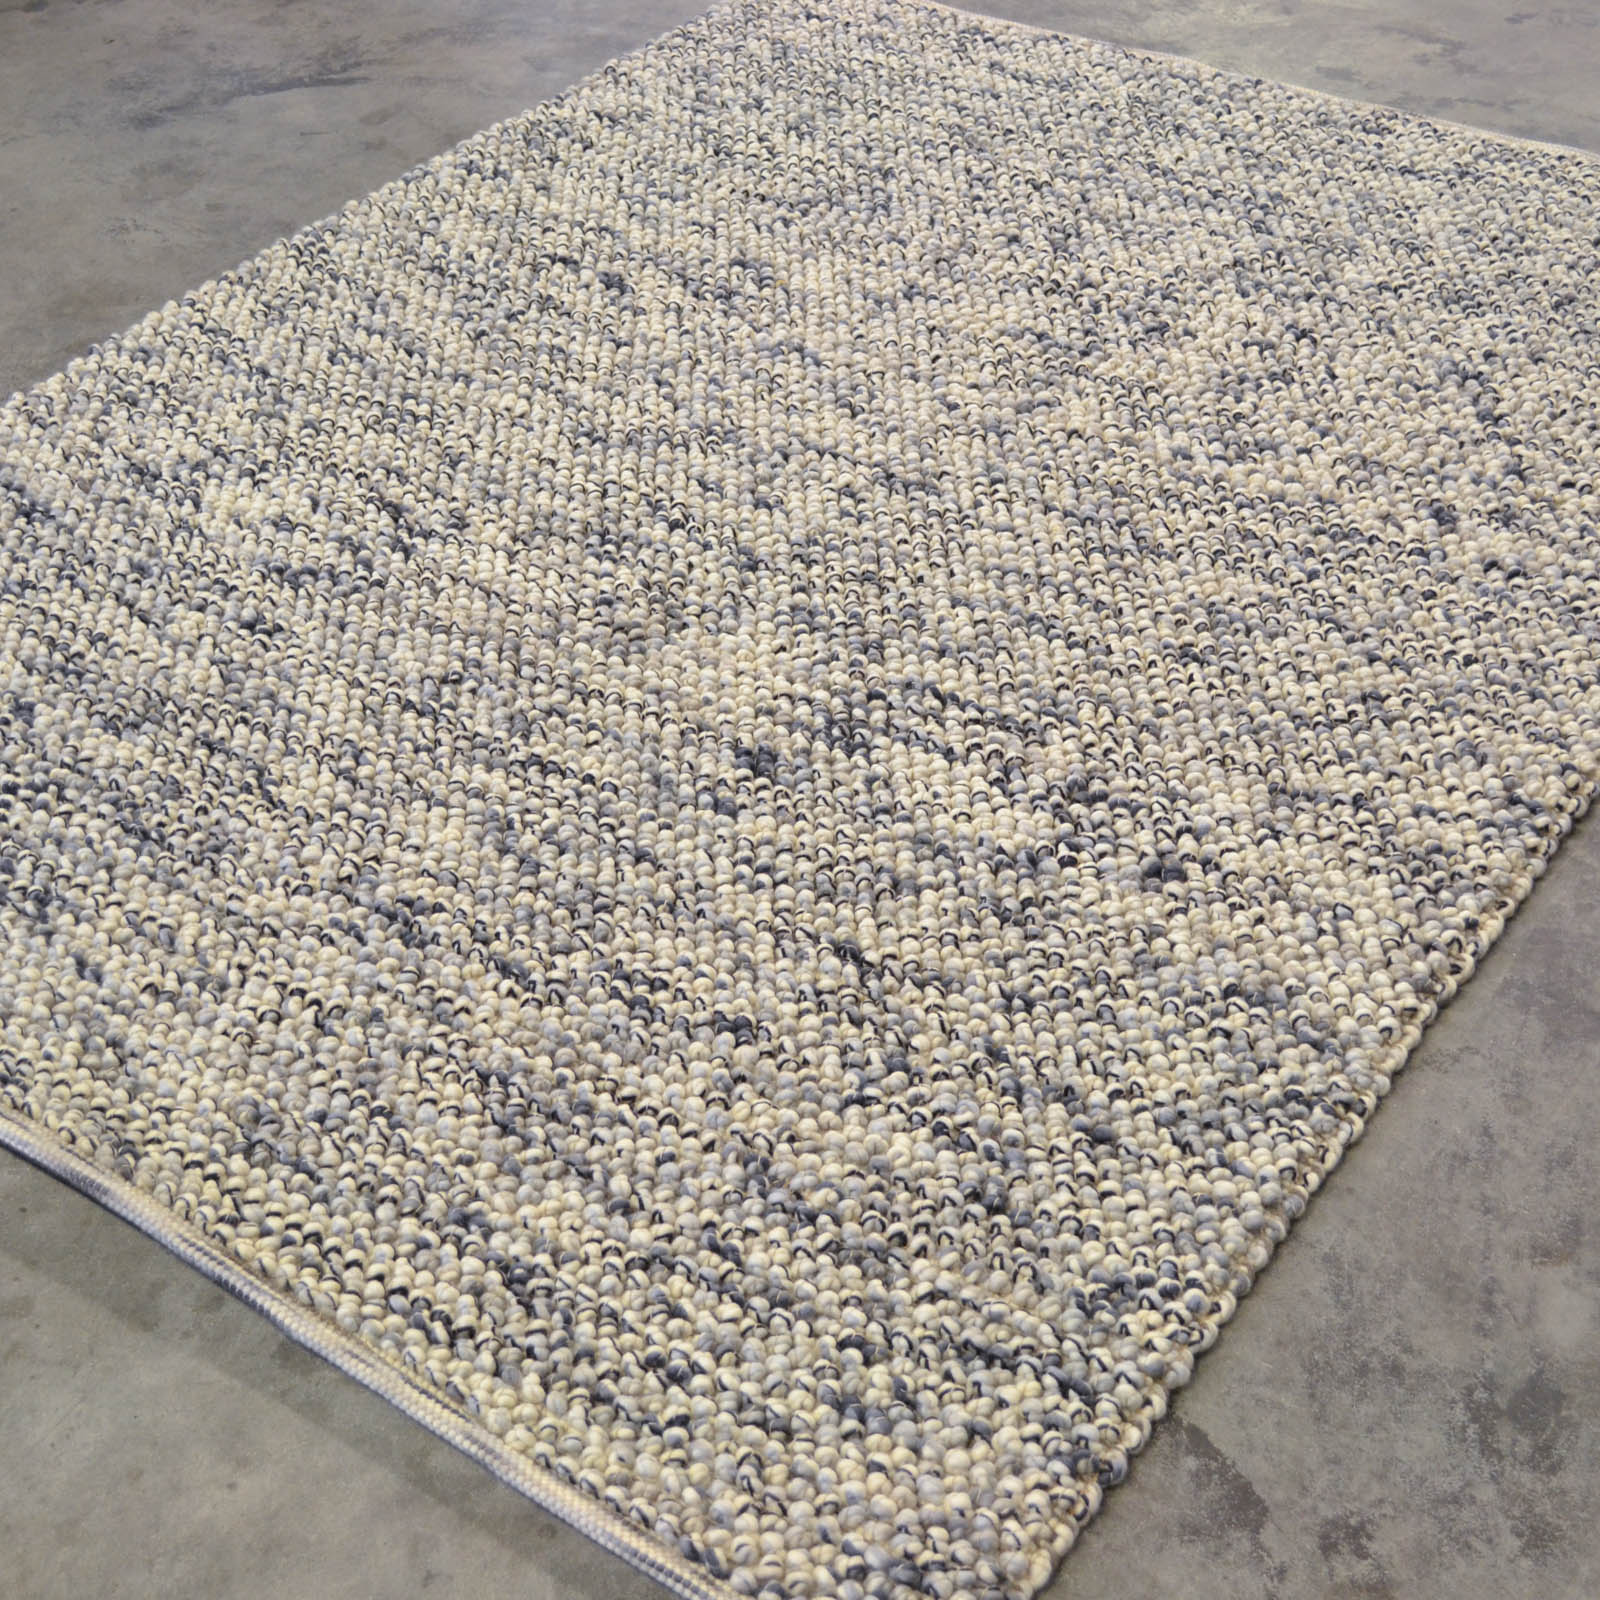 Marble Rugs 29504 by Brink and Campman